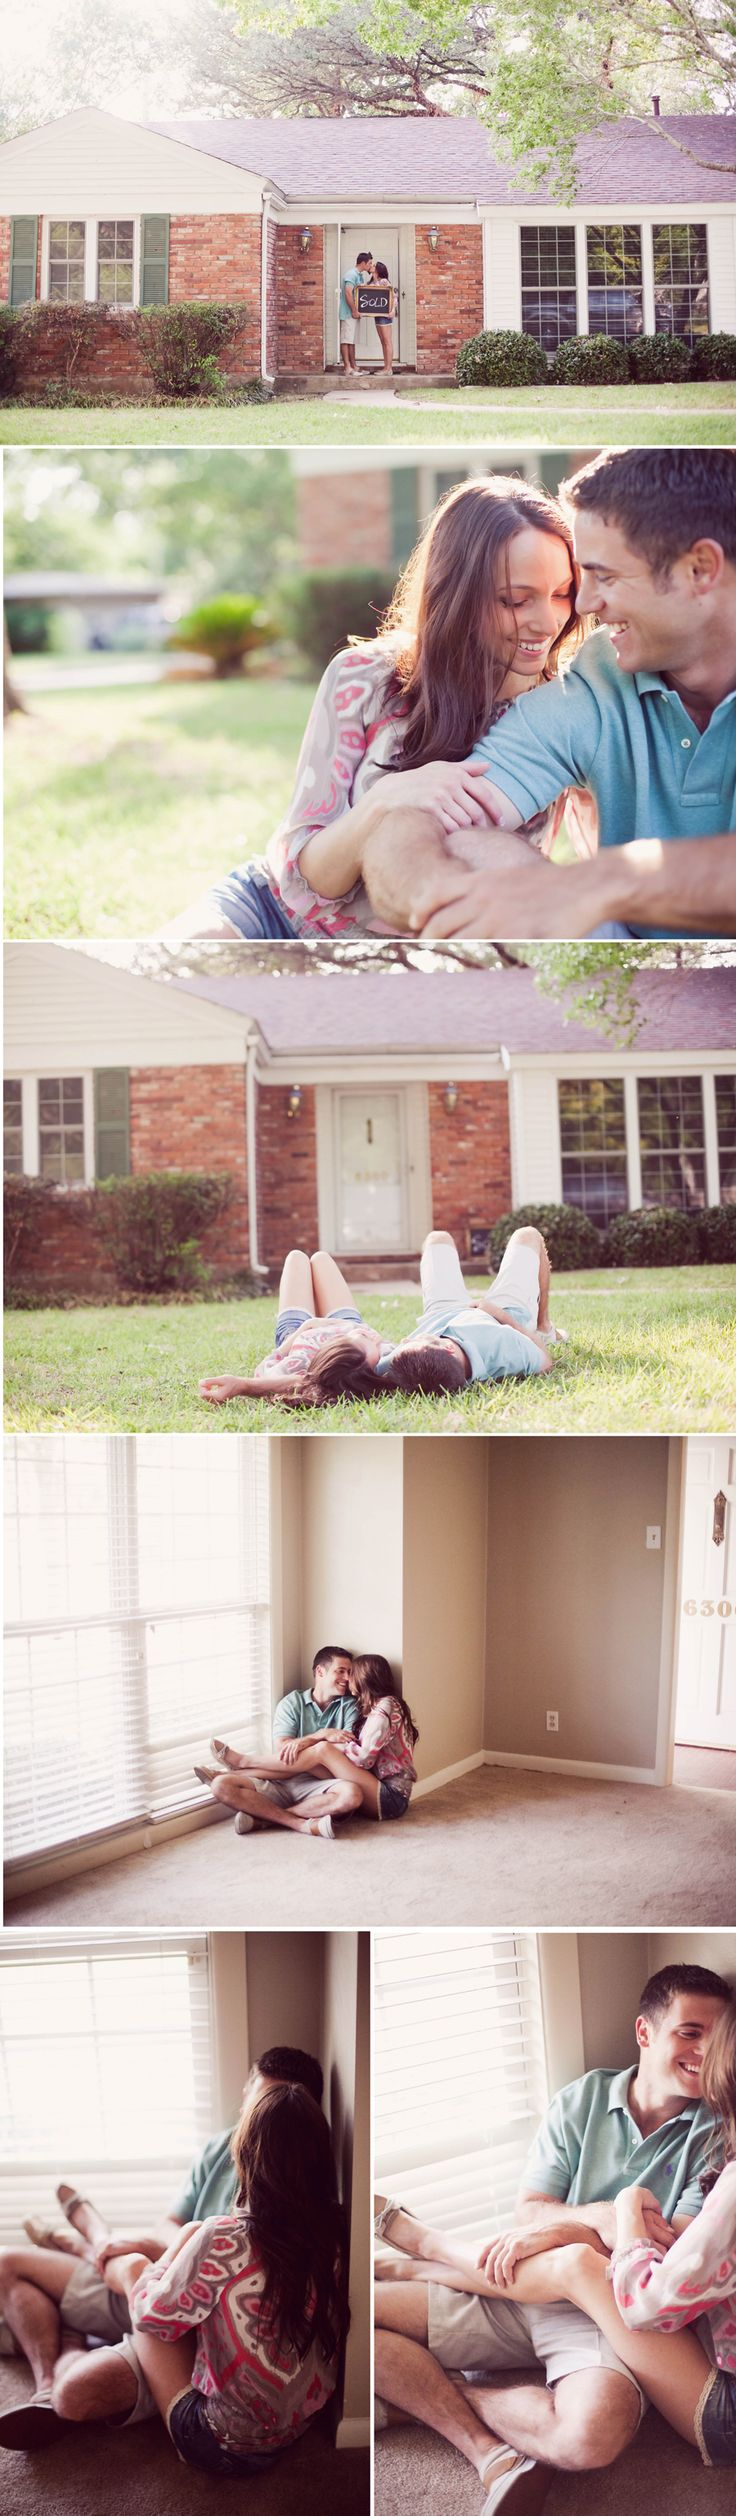 new home pictures, love this idea! we will be doing this very soon!!!!